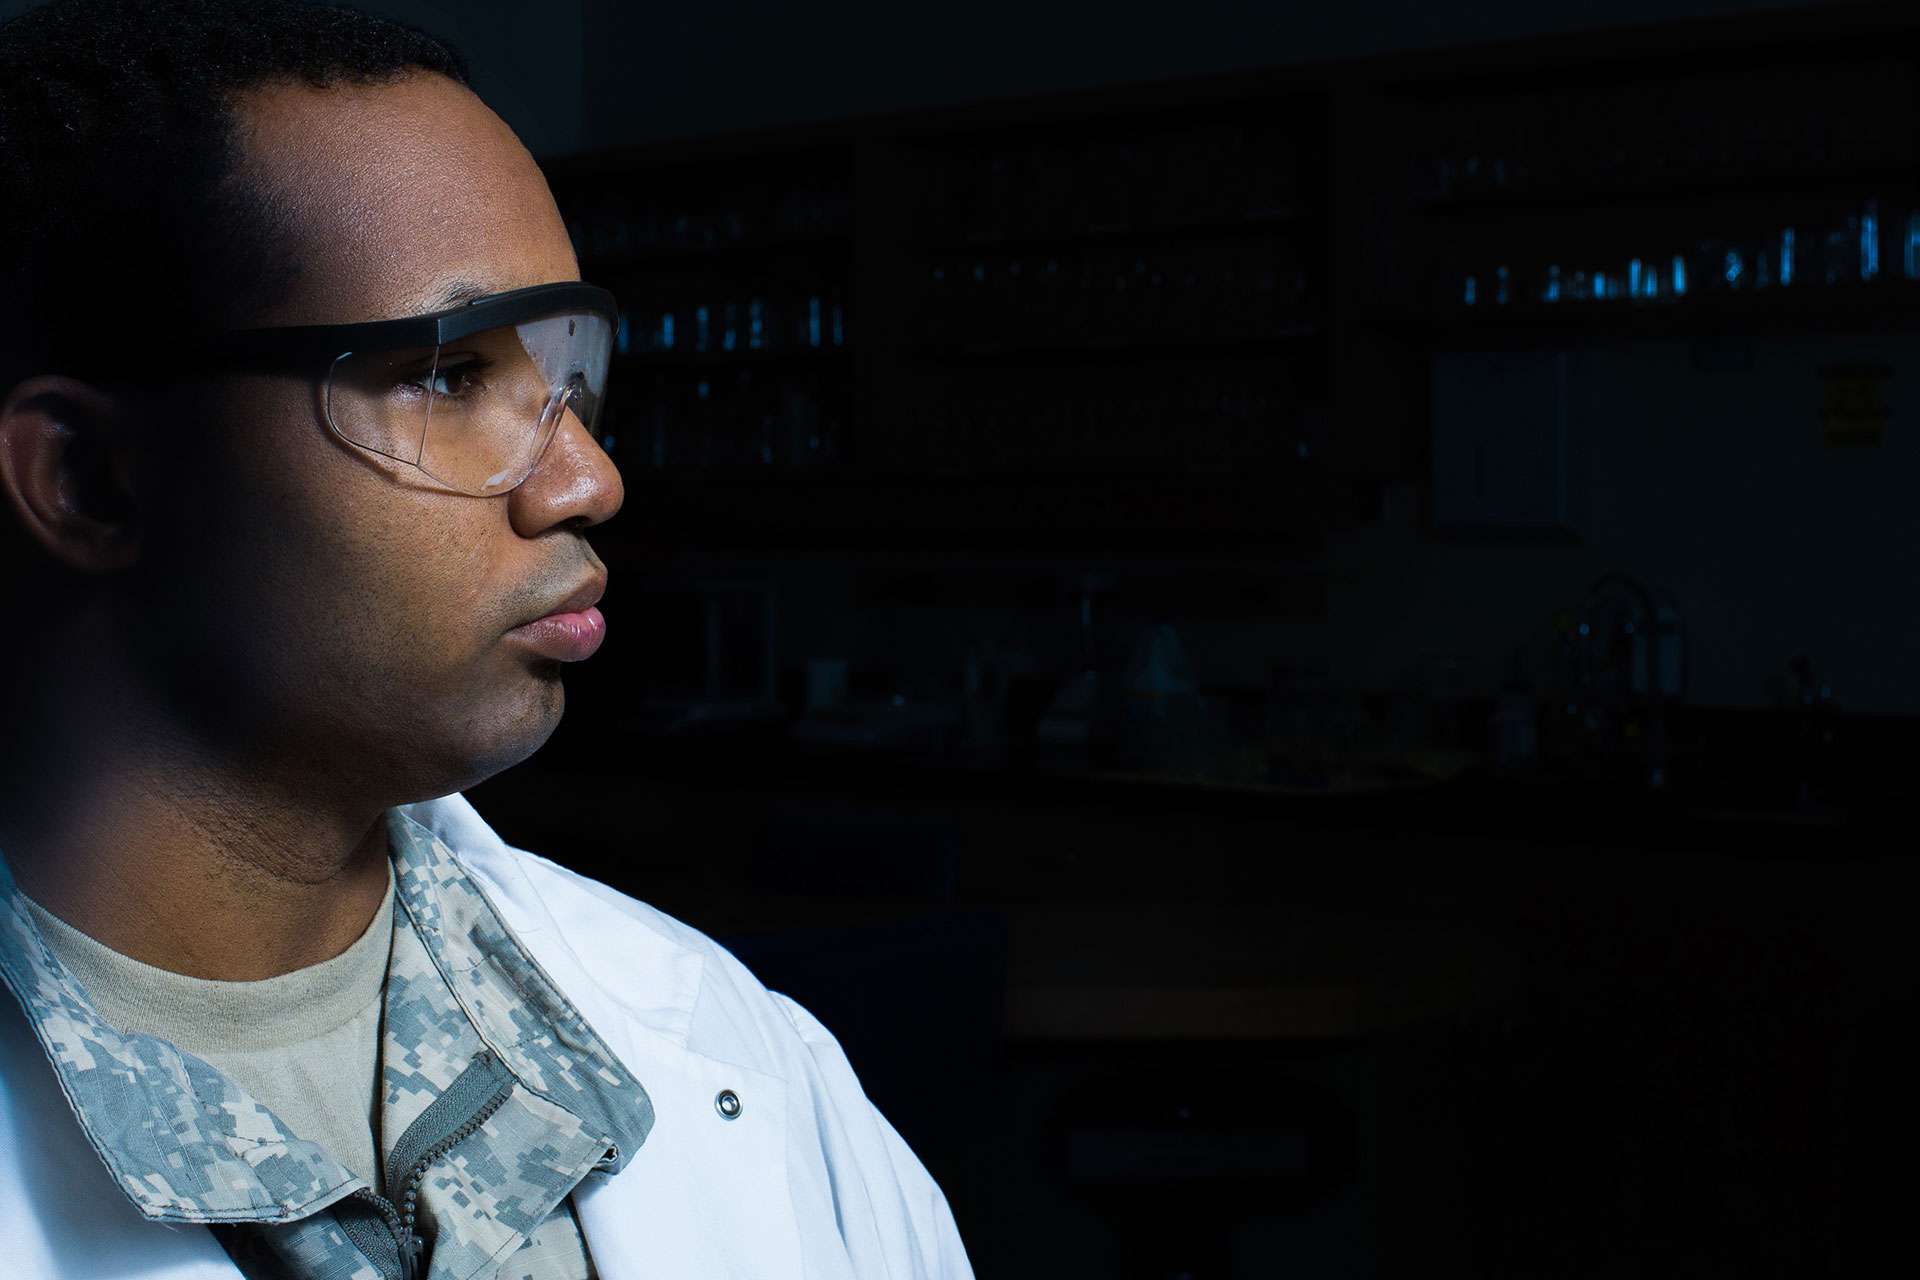 Student's passion to help others fuels cancer research